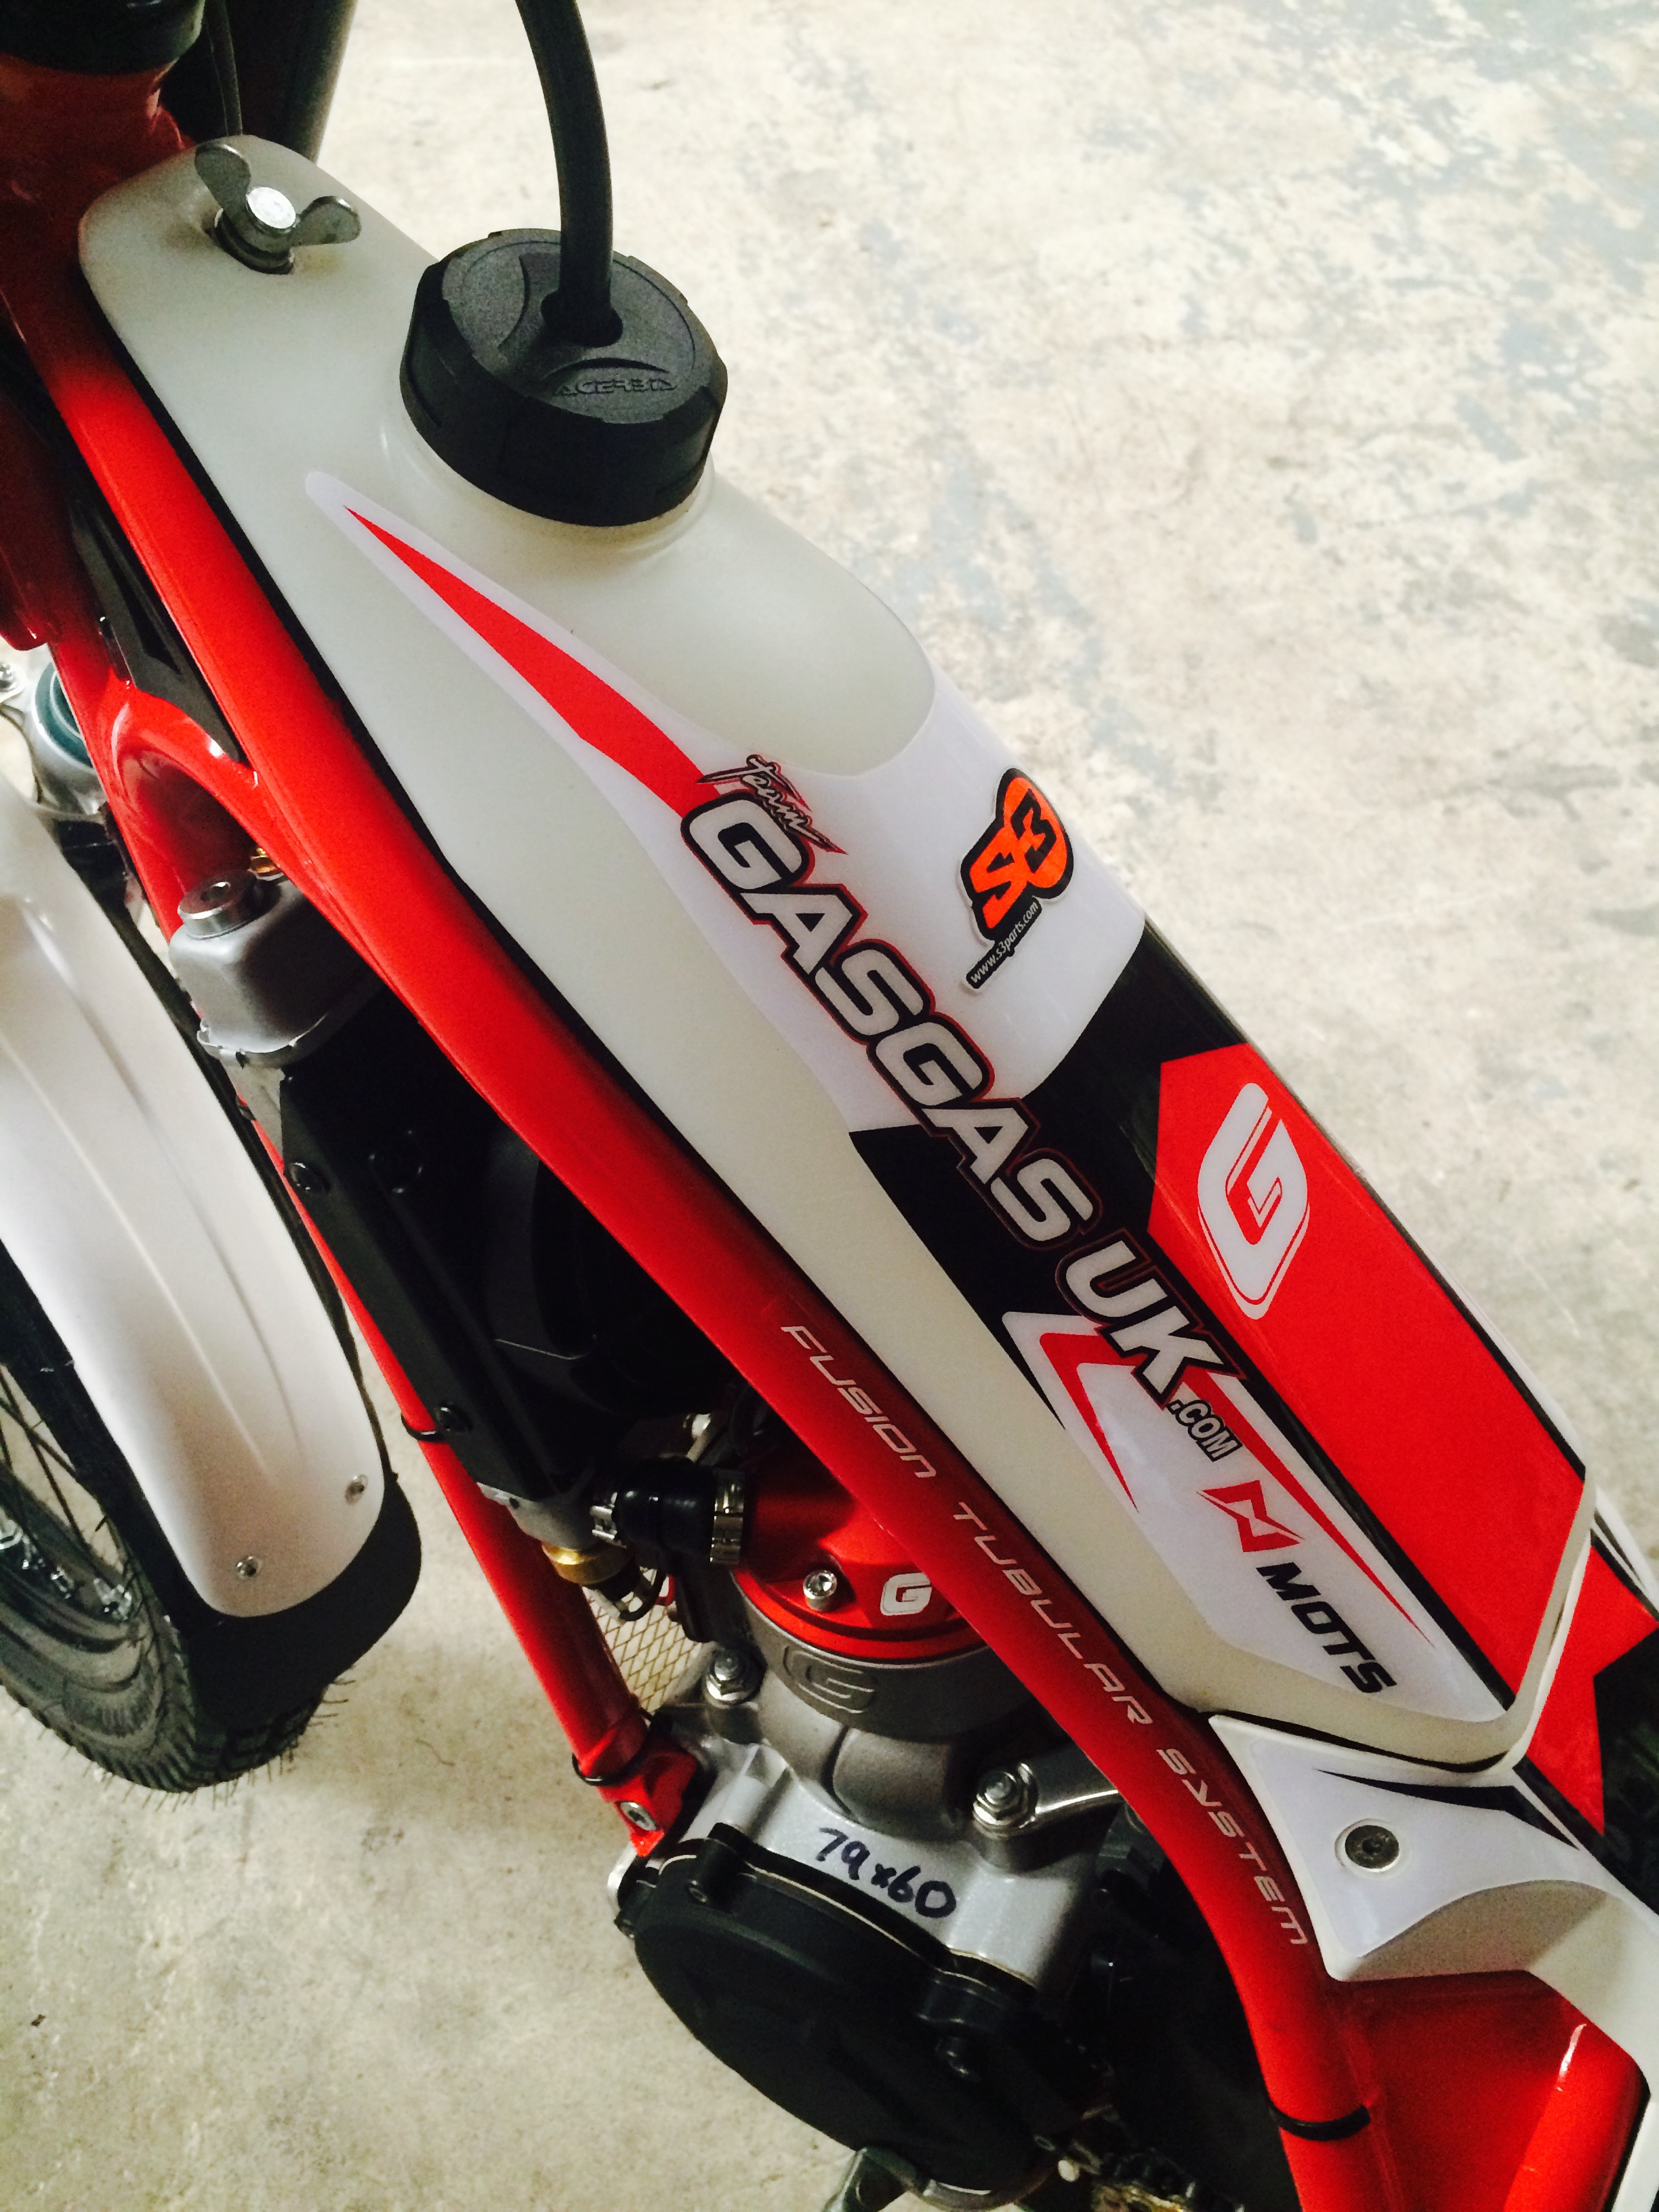 big tank for gg pro 171 trial enduro direct � trial amp enduro